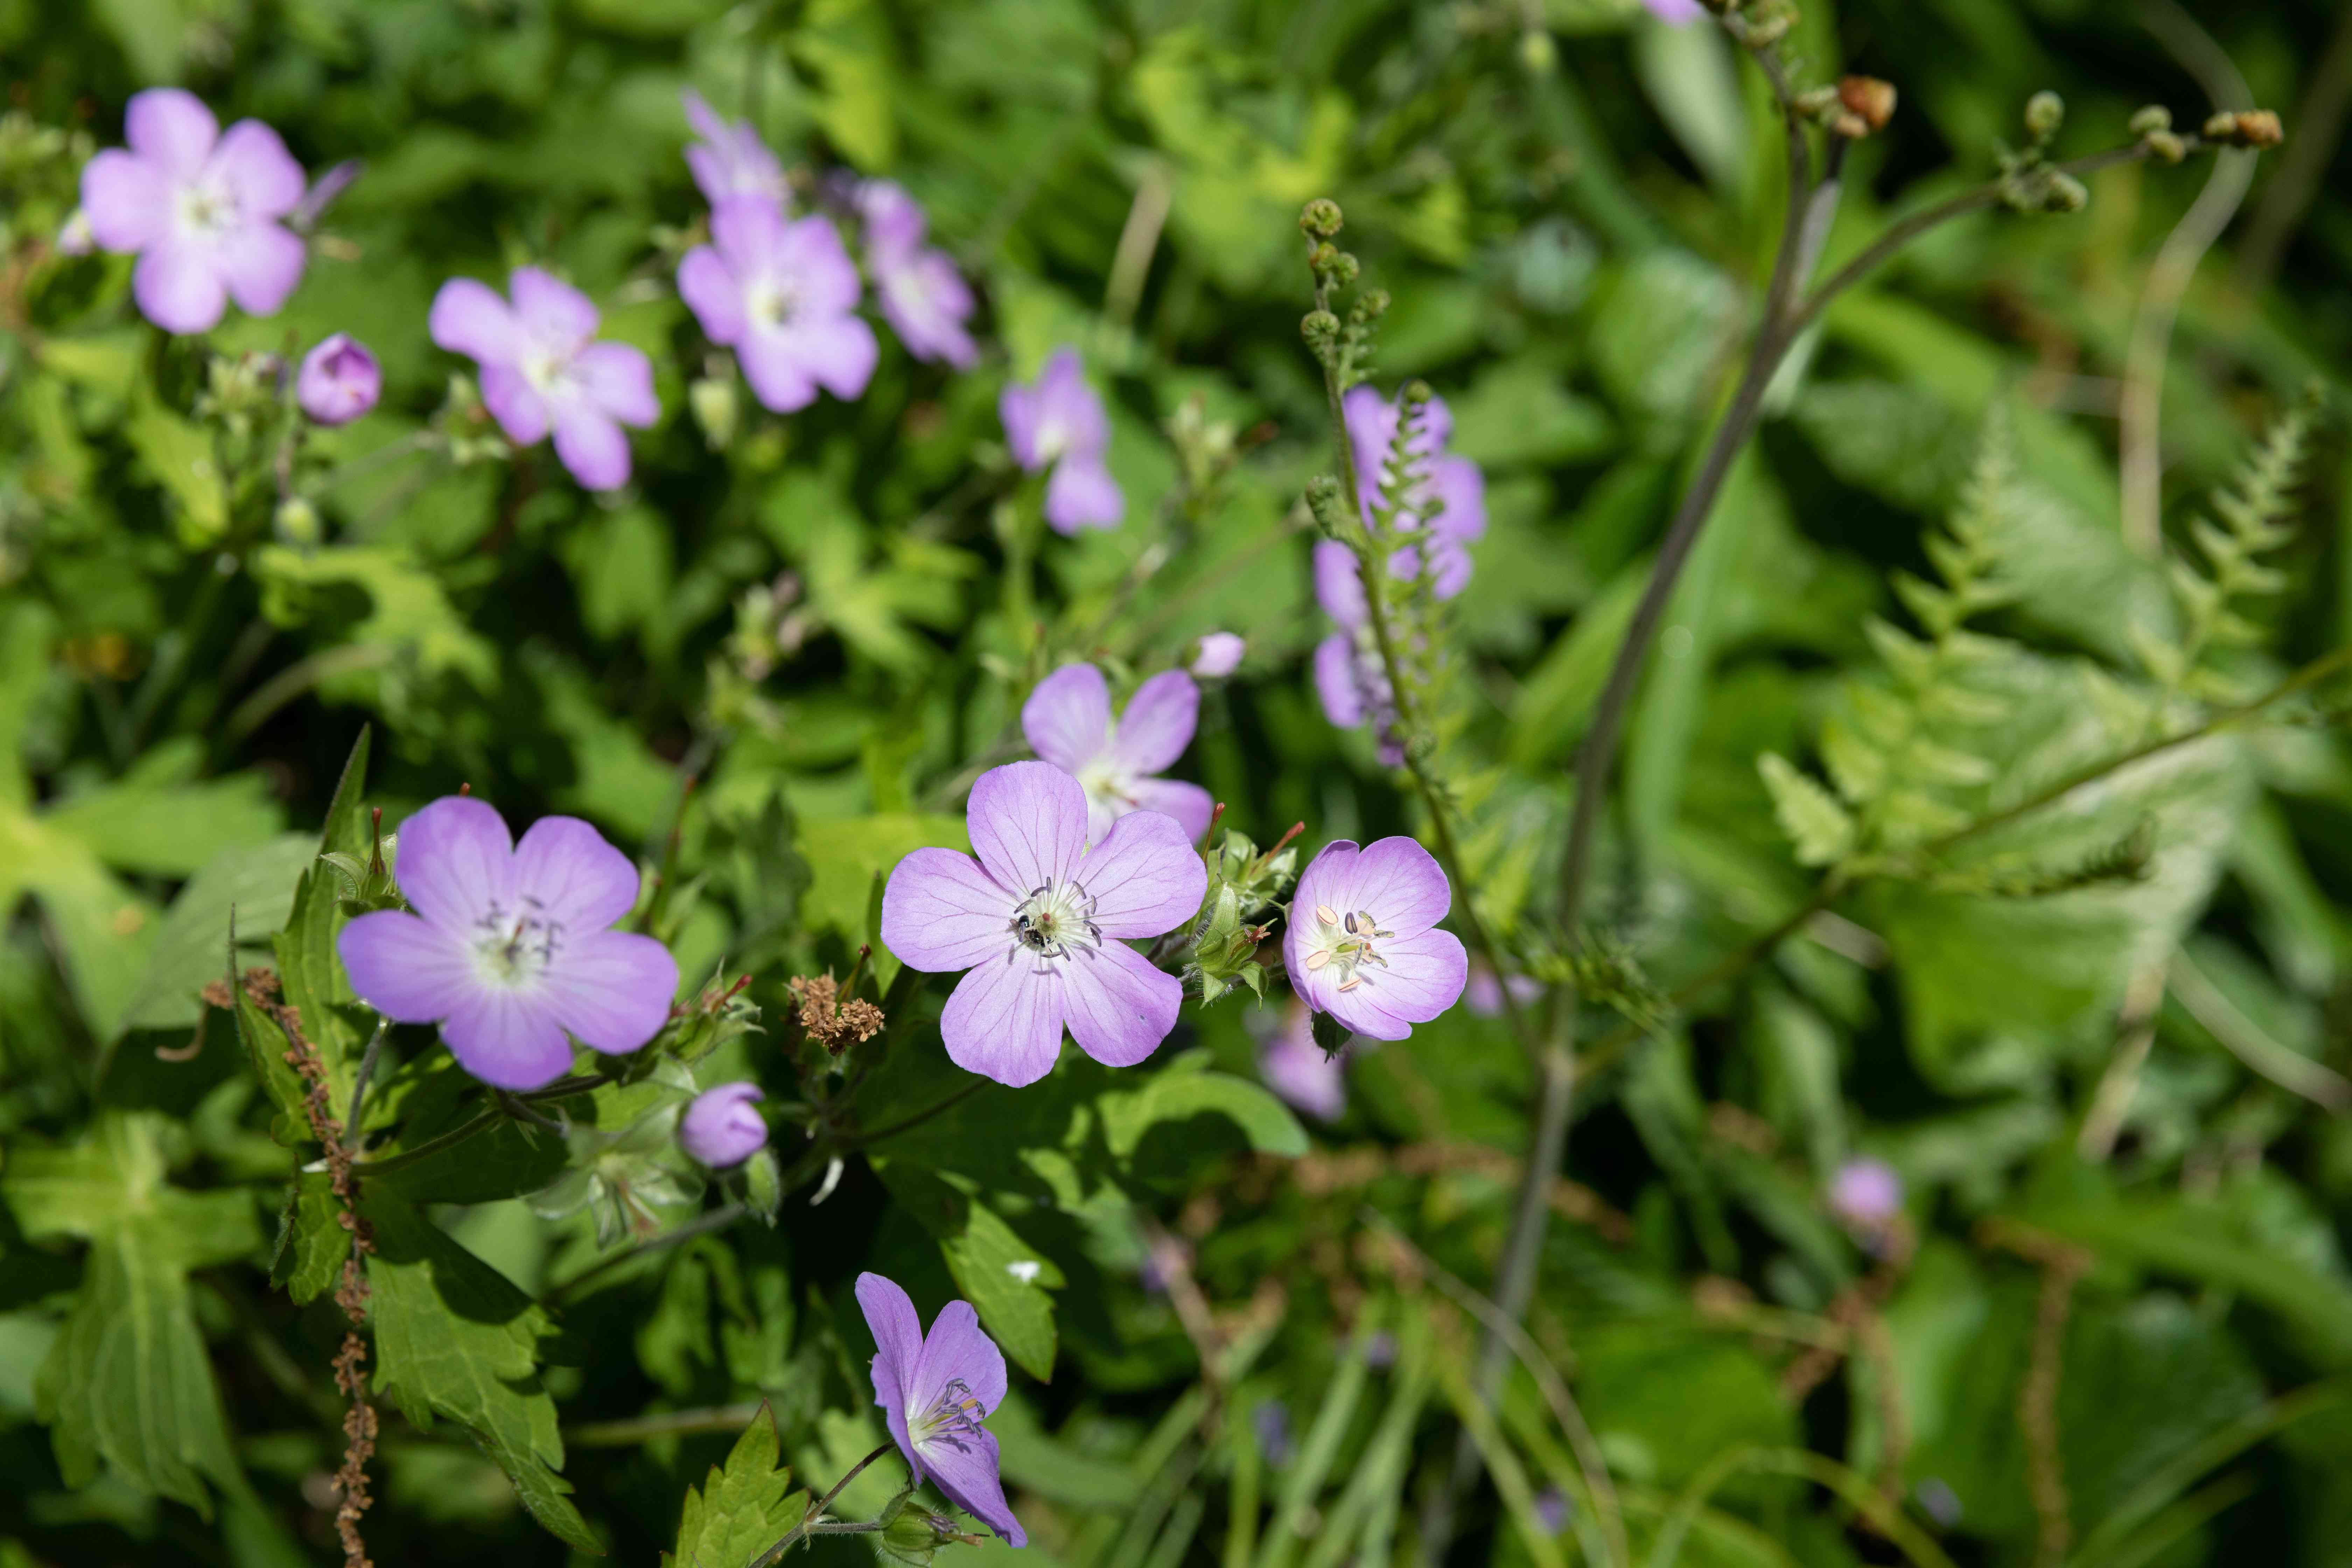 Geranium plant with small purple flowers surrounded by leaves in sunlight